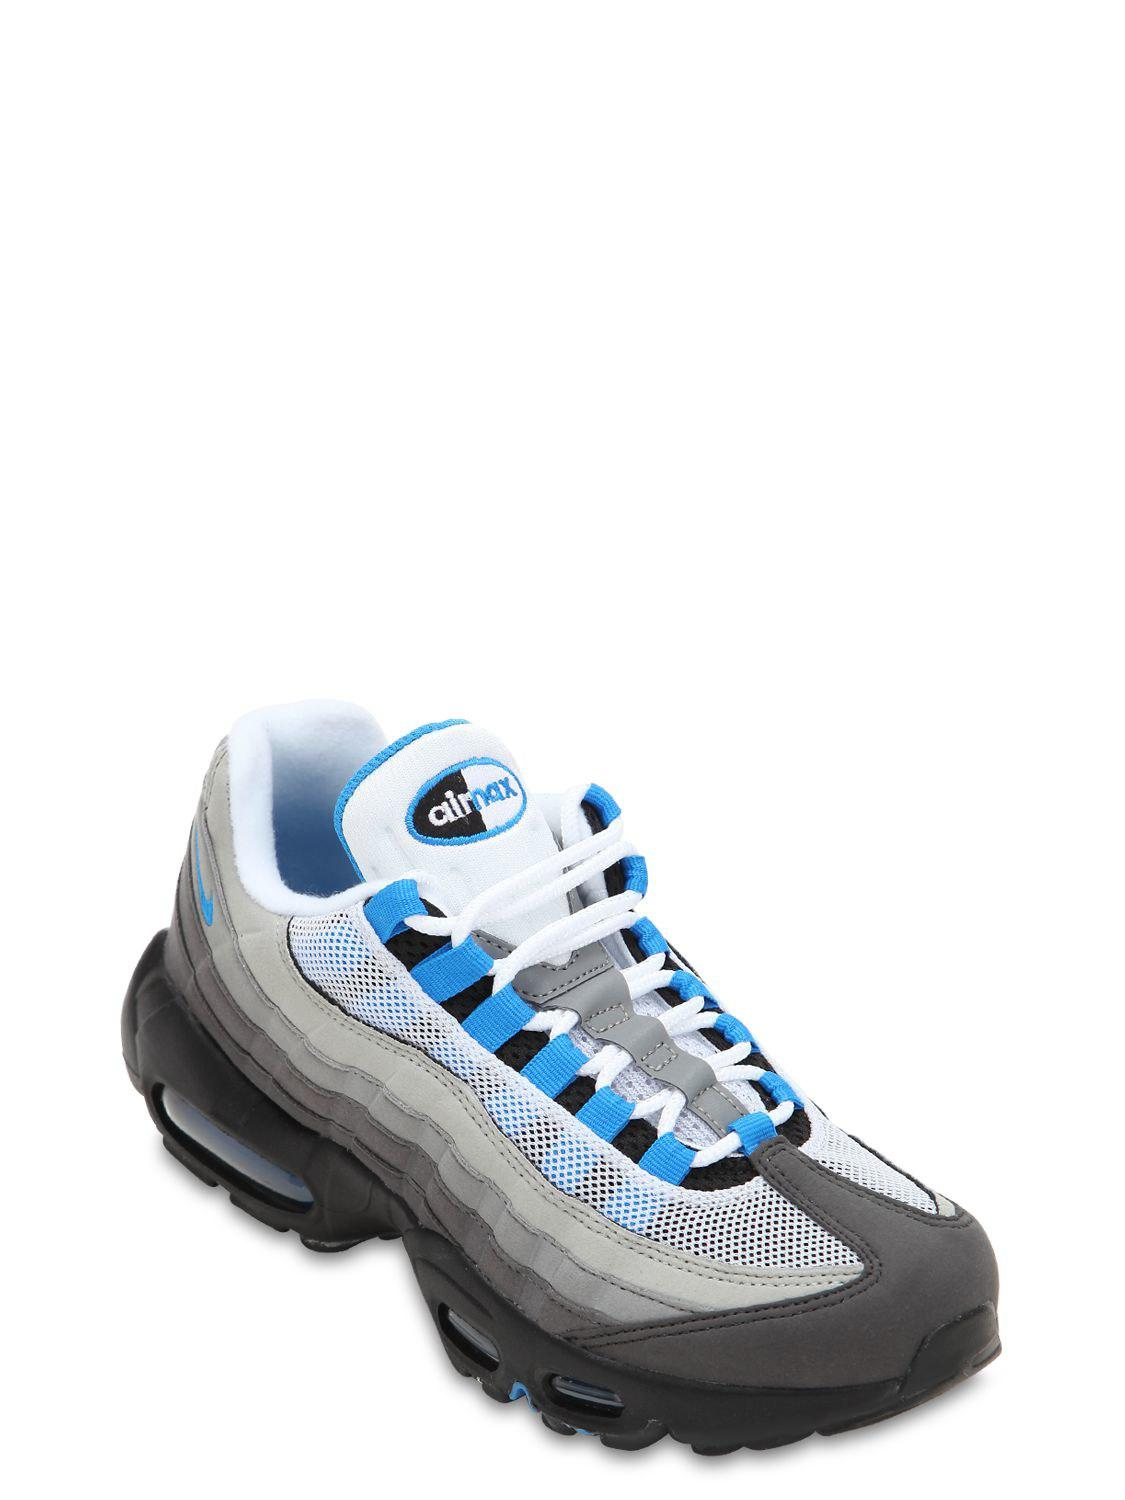 20ebb708a2 Lyst - Nike Air Max 95 Sneakers in Blue